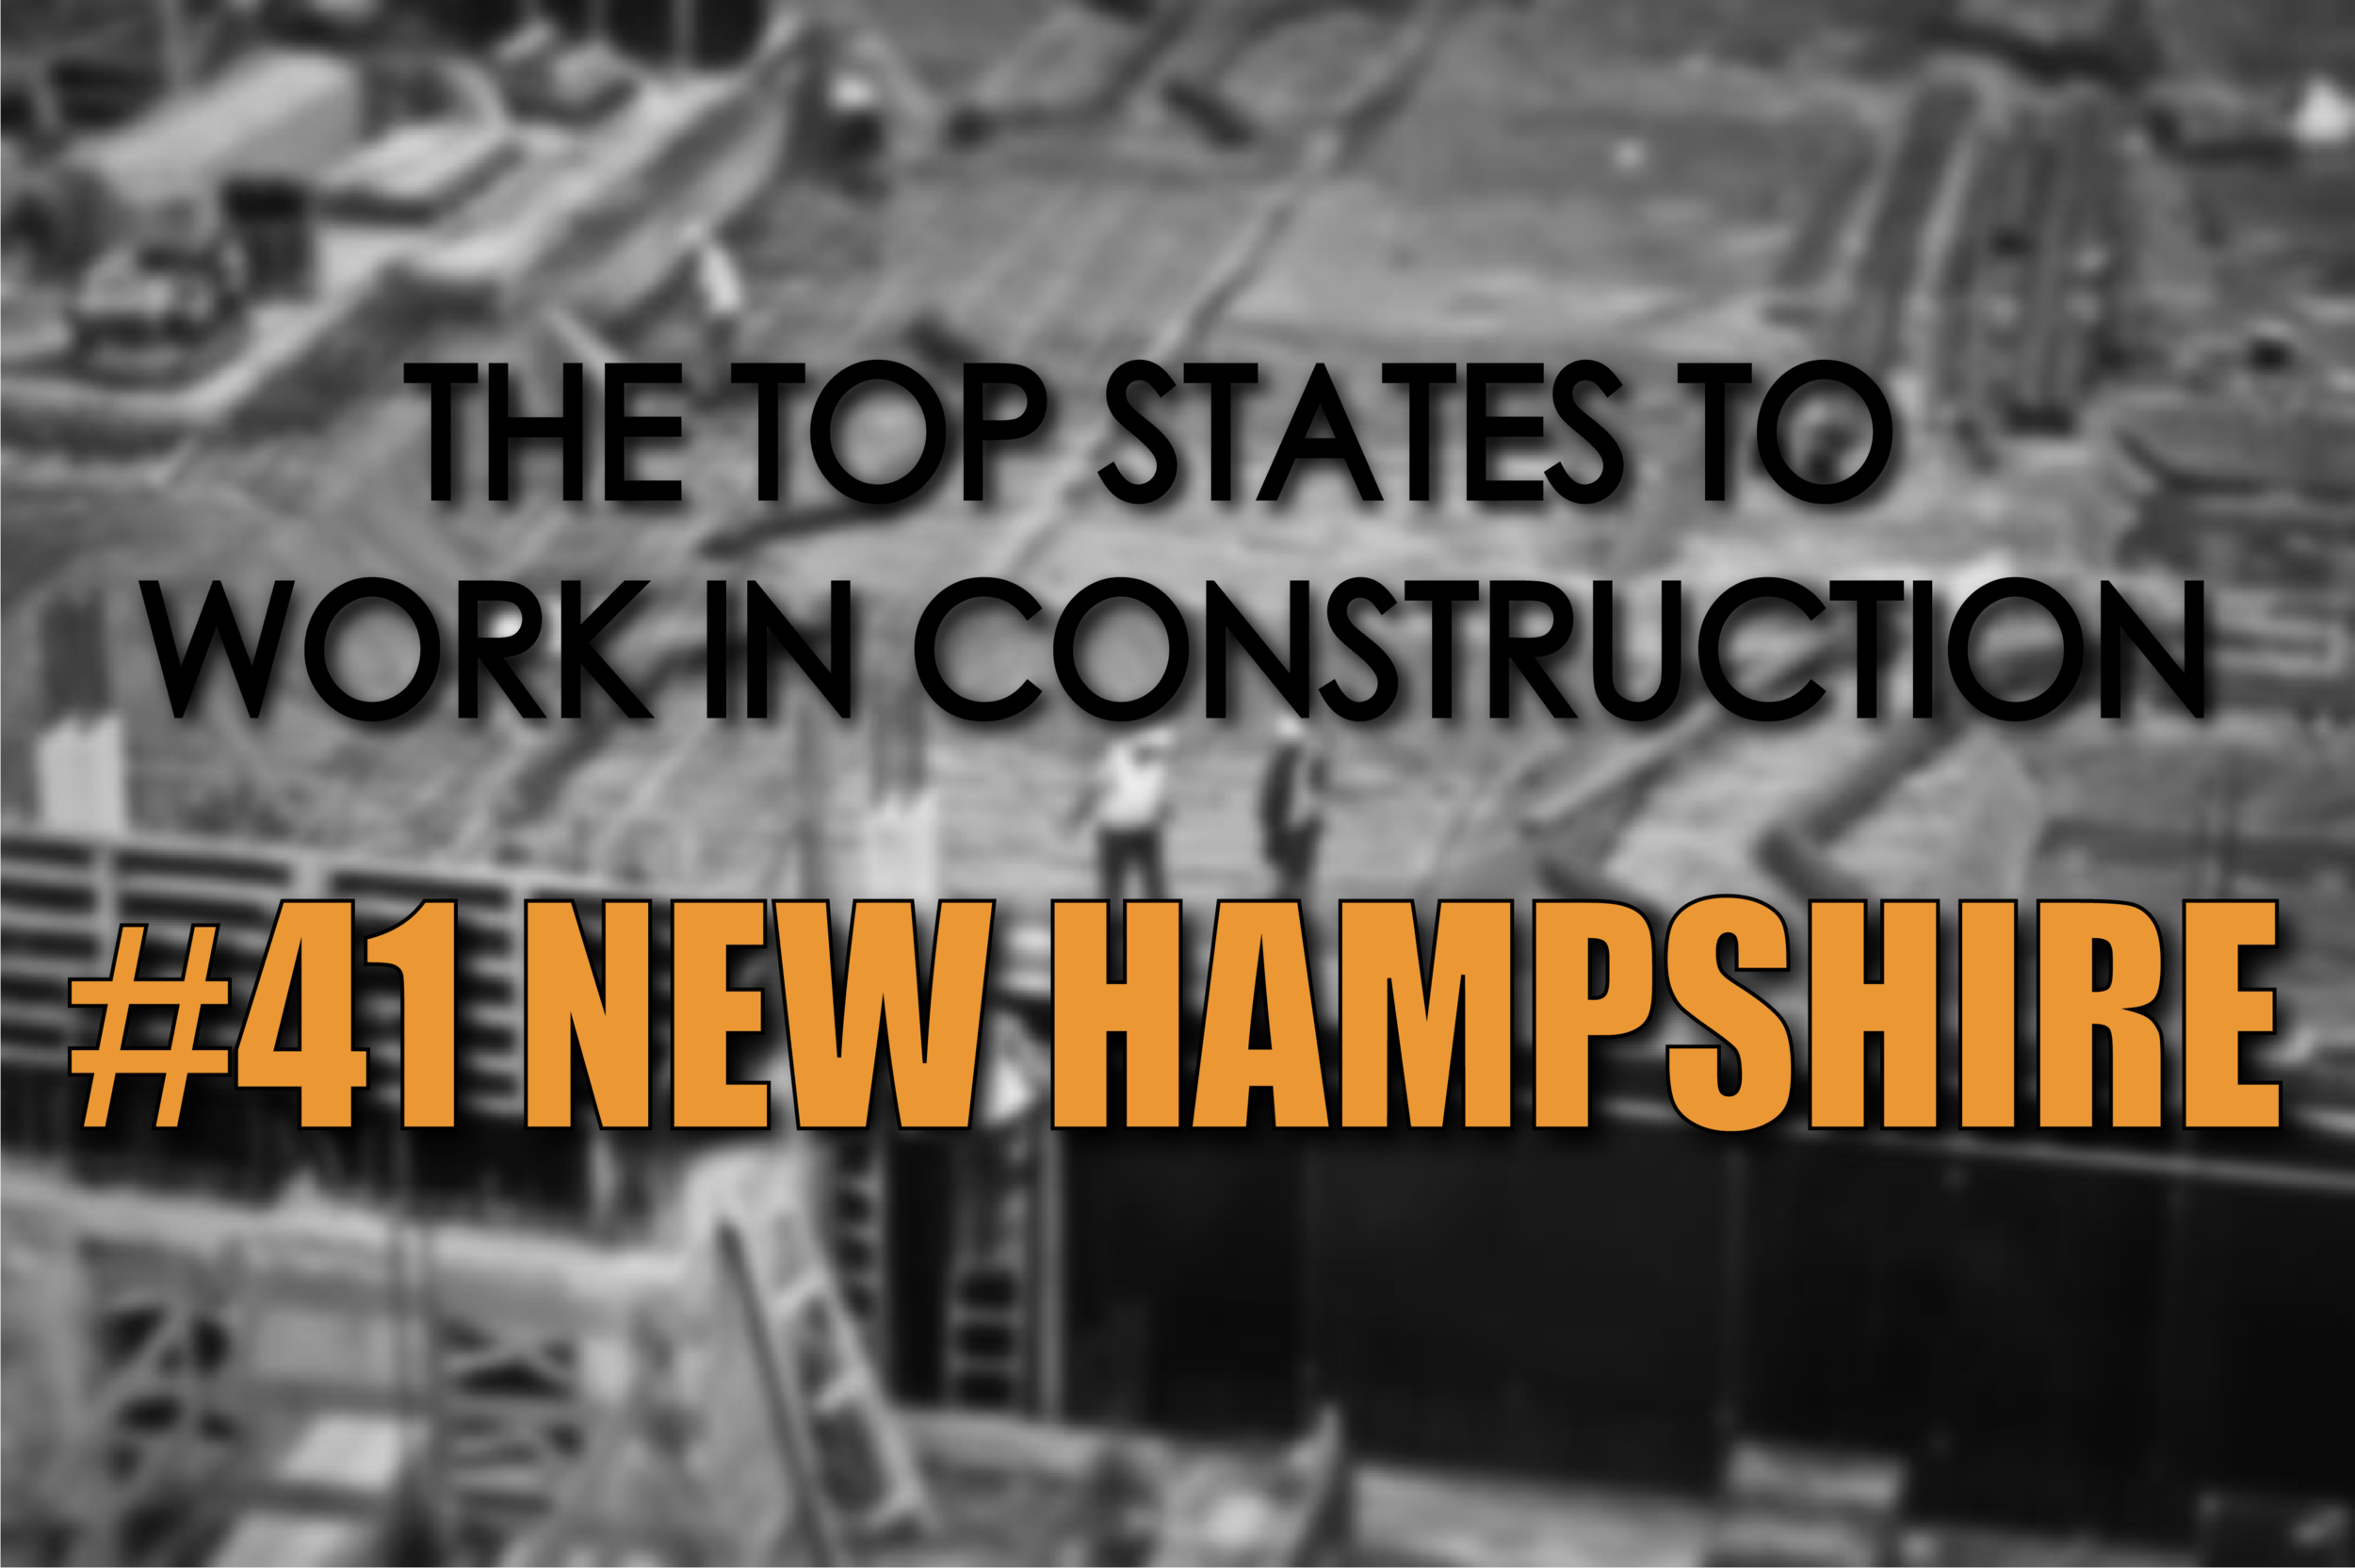 New Hampshire best states to work in construction